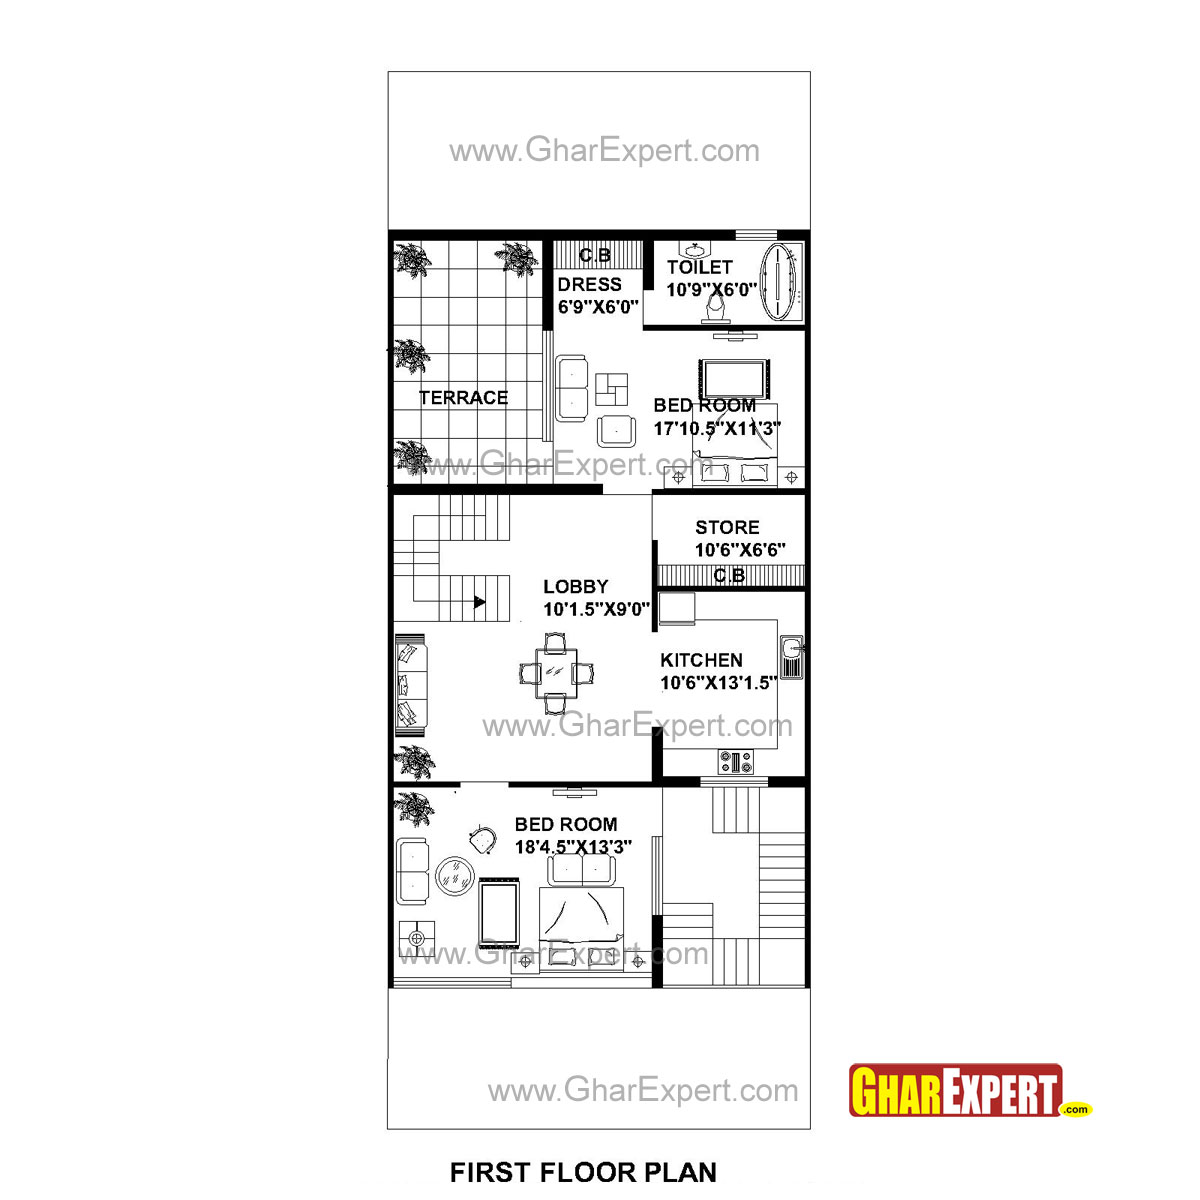 100 30 Sq Meters To Feet 150 Meters To Feet: 250 square foot apartment floor plan